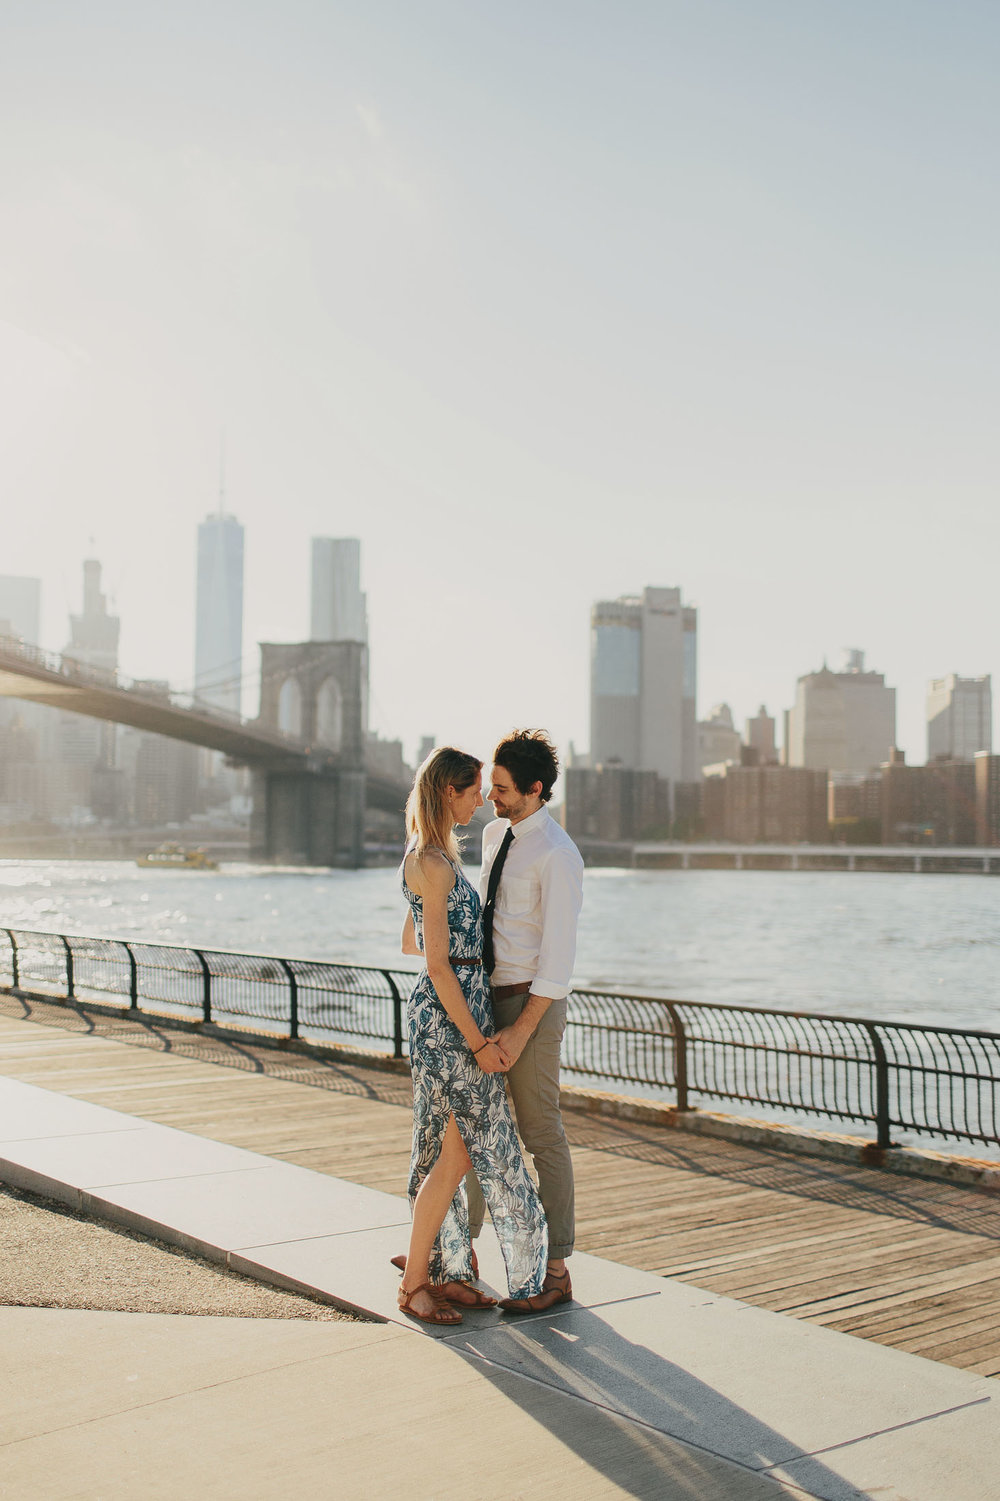 34 finch and oak engagement wedding photographer gold coast new york brooklyn.jpg